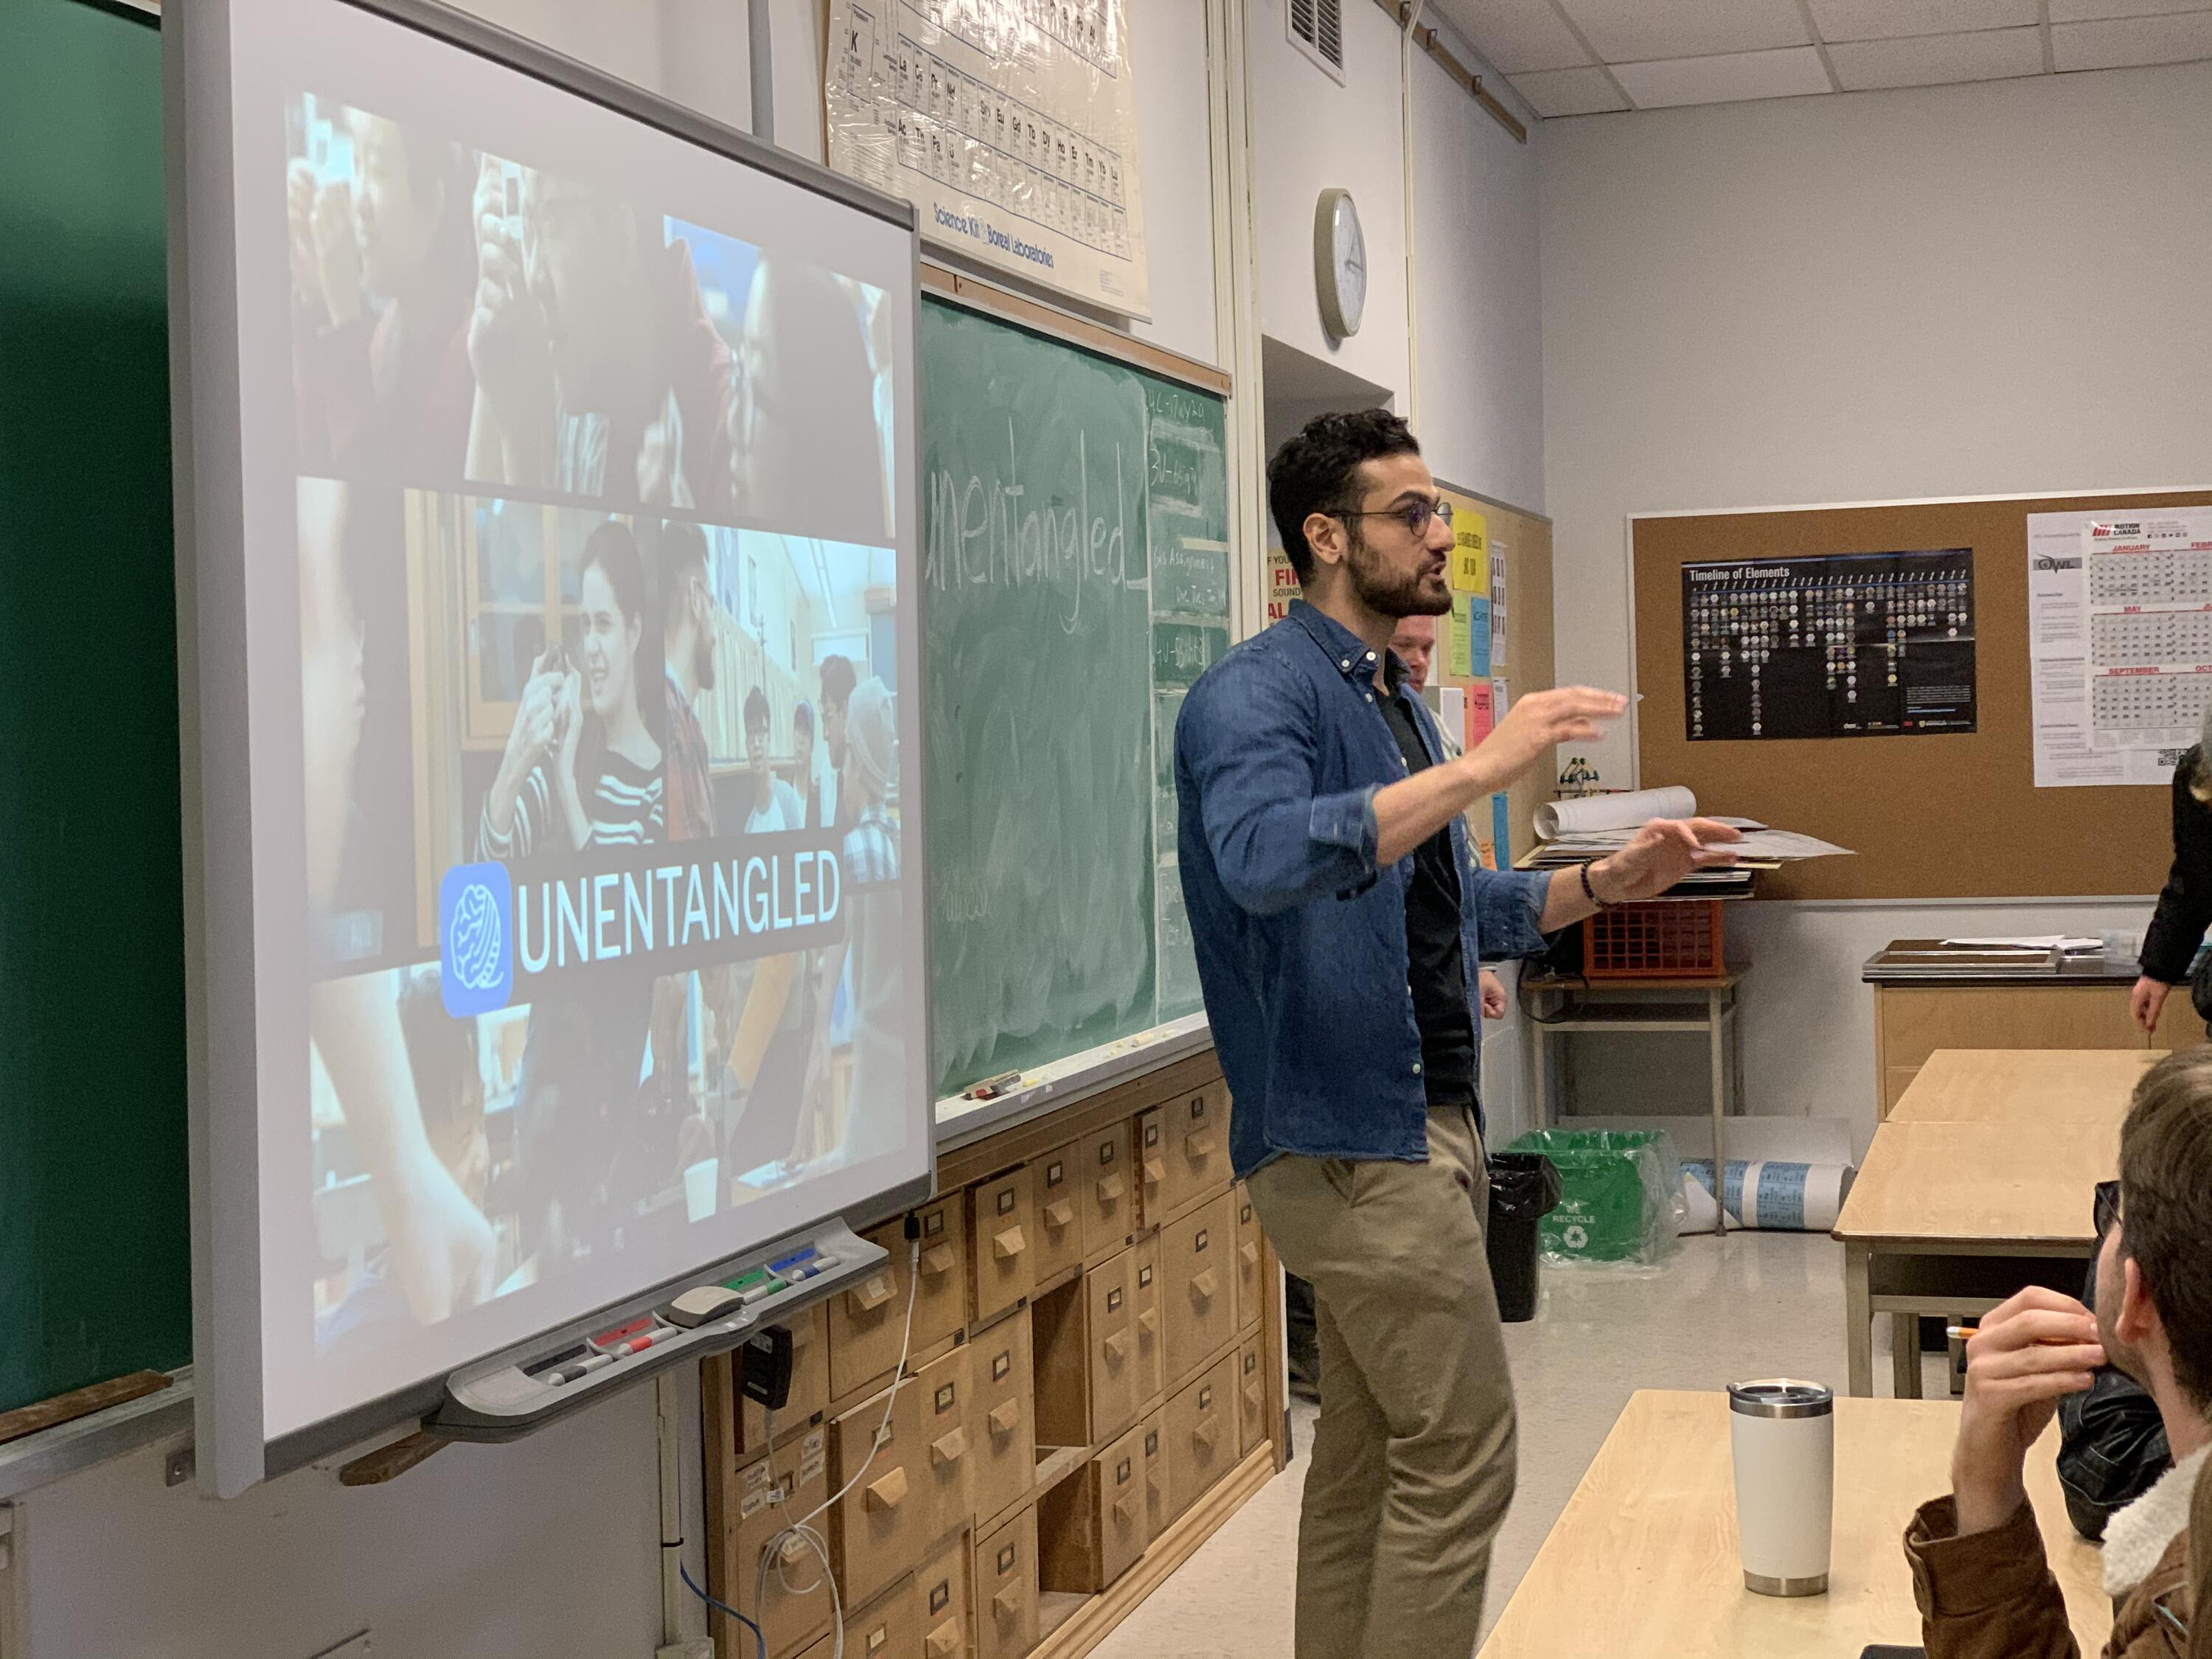 Shayan Majidy in front of a classroom of students teaching